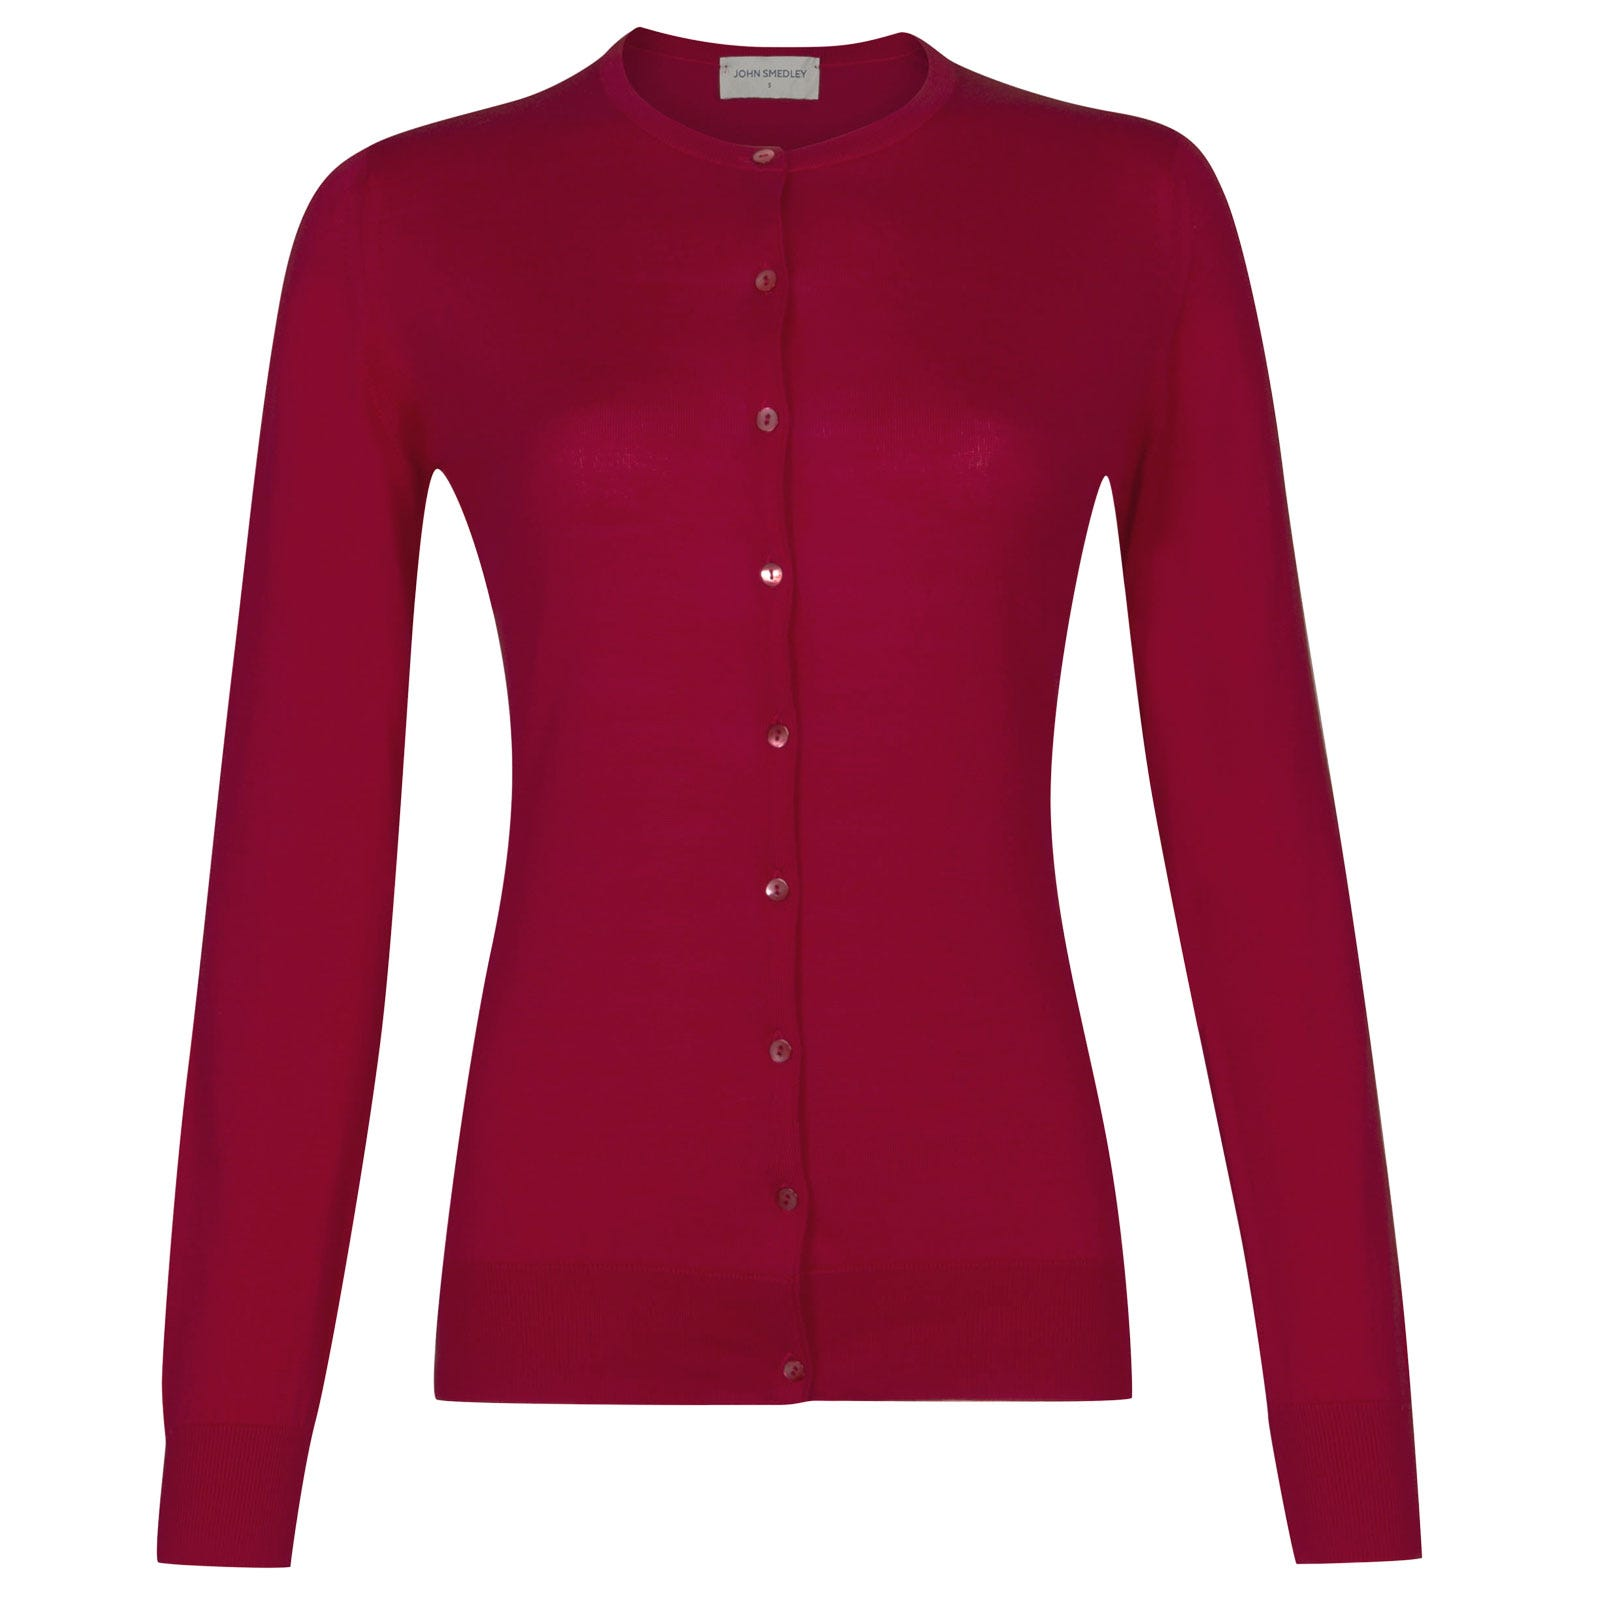 John Smedley Islington Sea Island Cotton Cardigan in Scarlet Sky-S